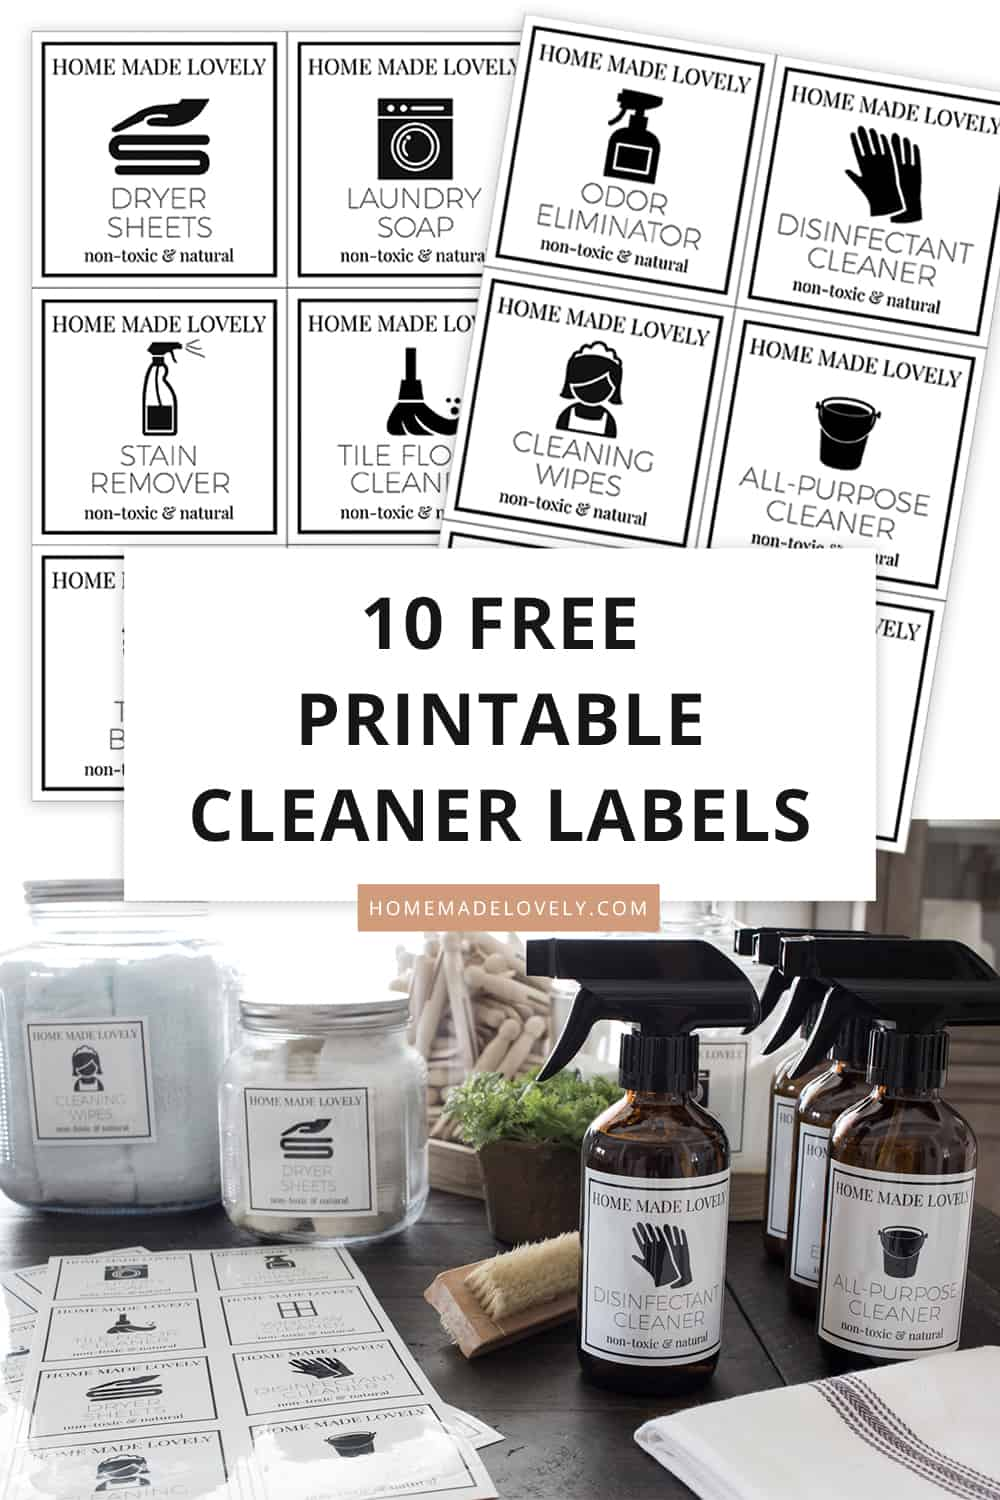 printable cleaner labels shown ready to be cut and on bottles with text overlay explaining